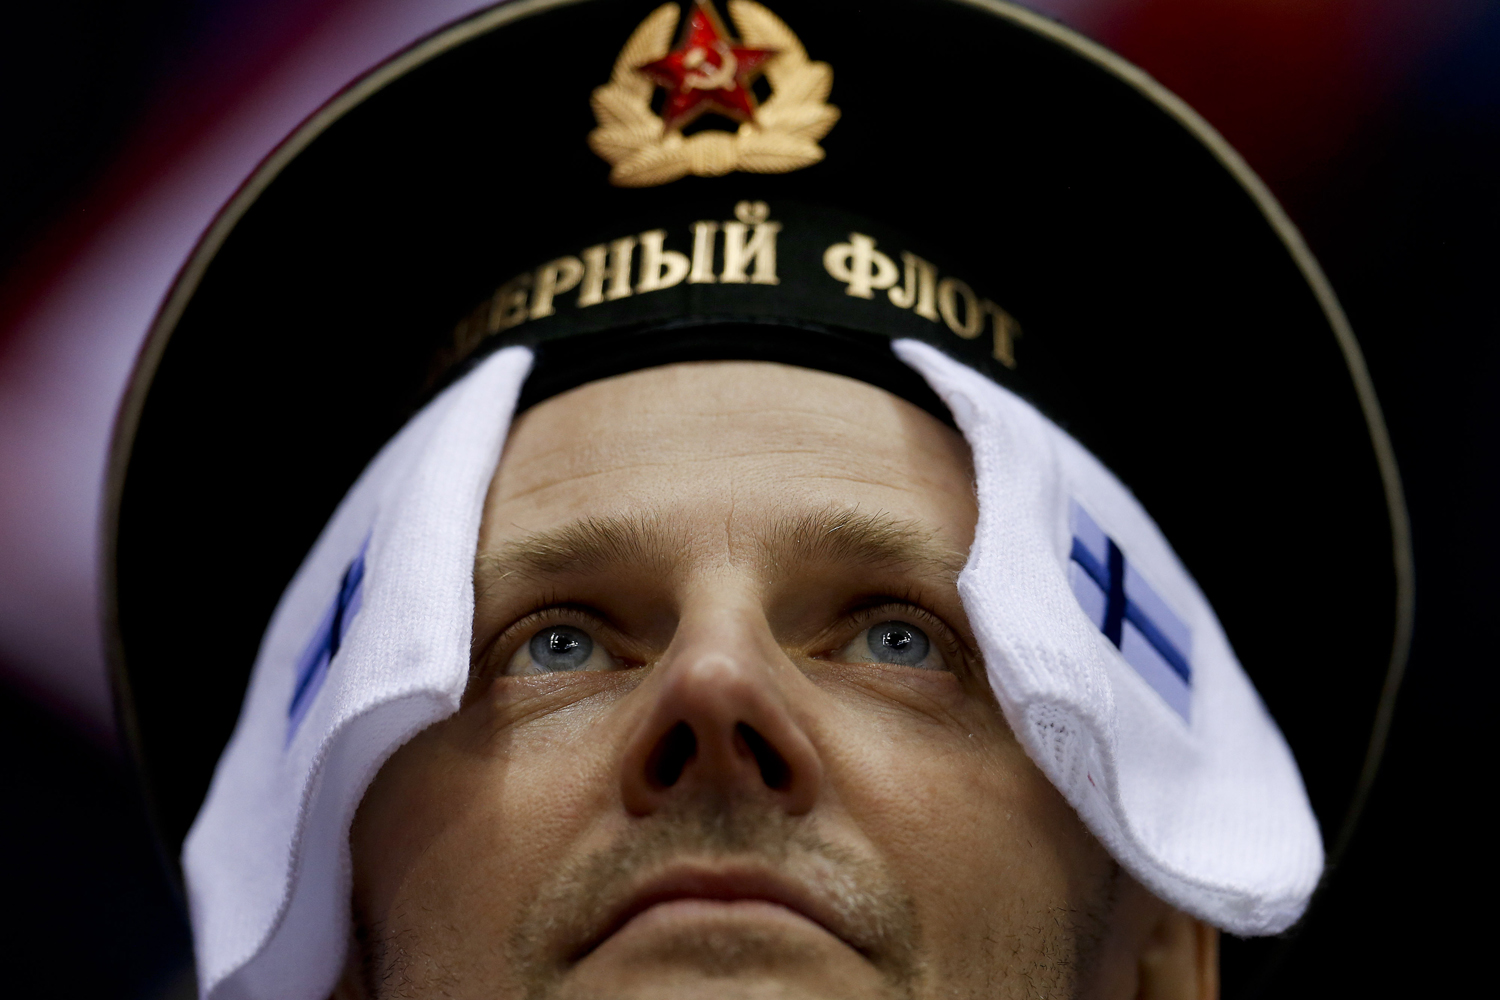 A hockey fan wears symbols from the Finnish flag before a men's ice hockey game against Canada at the 2014 Winter Olympics, Sunday, Feb. 16, 2014, in Sochi, Russia.